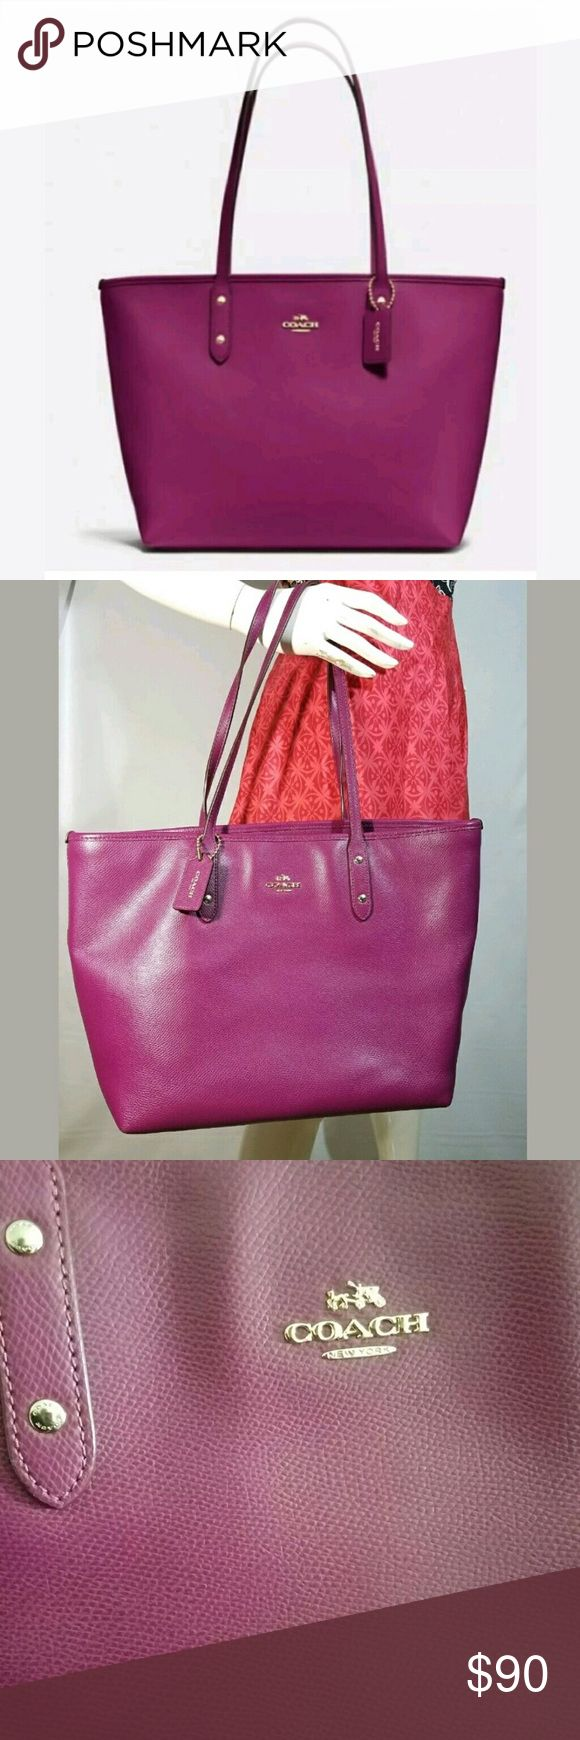 "Coach City Zip Leather Fuchsia Tote 👜 💜 Crossgrain leather Inside zip, cell phone and multifunction pockets Zip-top closure, fabric lining Handles with 9 1/2"" drop 11 3/4"" (L) x 10 1/2"" (H) x 5 1/2"" (W) Gold hardware   Used only a couple/few times and in perfect condition. A great little purple/dark fuchsia buy!😍💜👜 Coach Bags Totes"